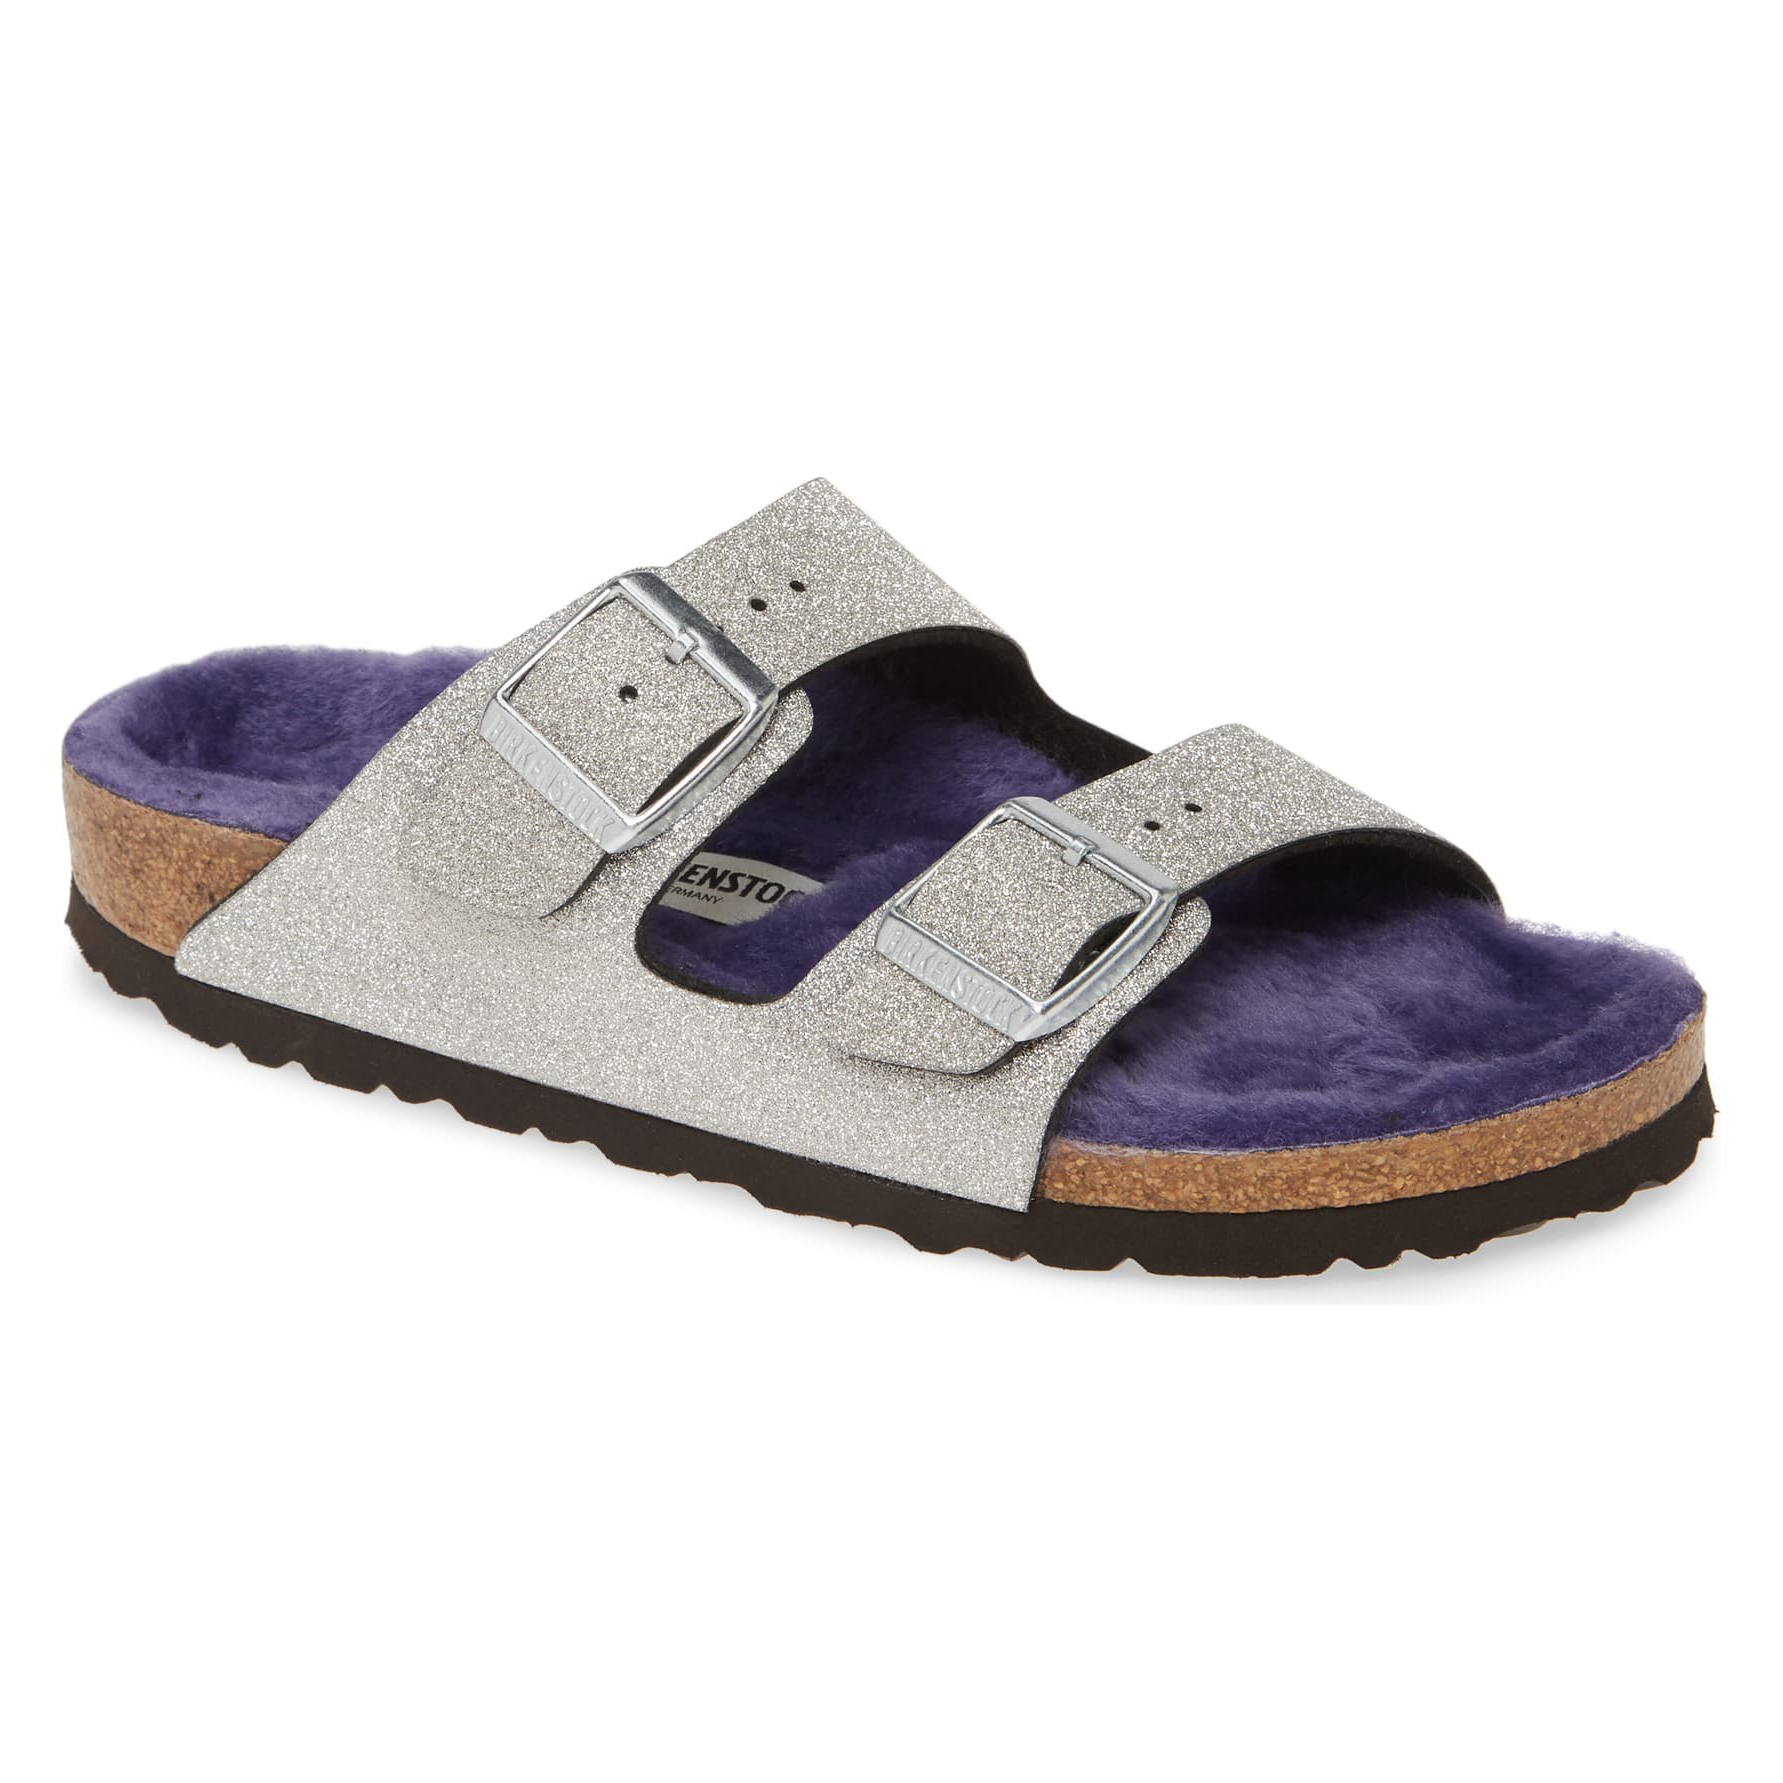 Birkenstock Arizona Glitter Dust Genuine Shearling Slide